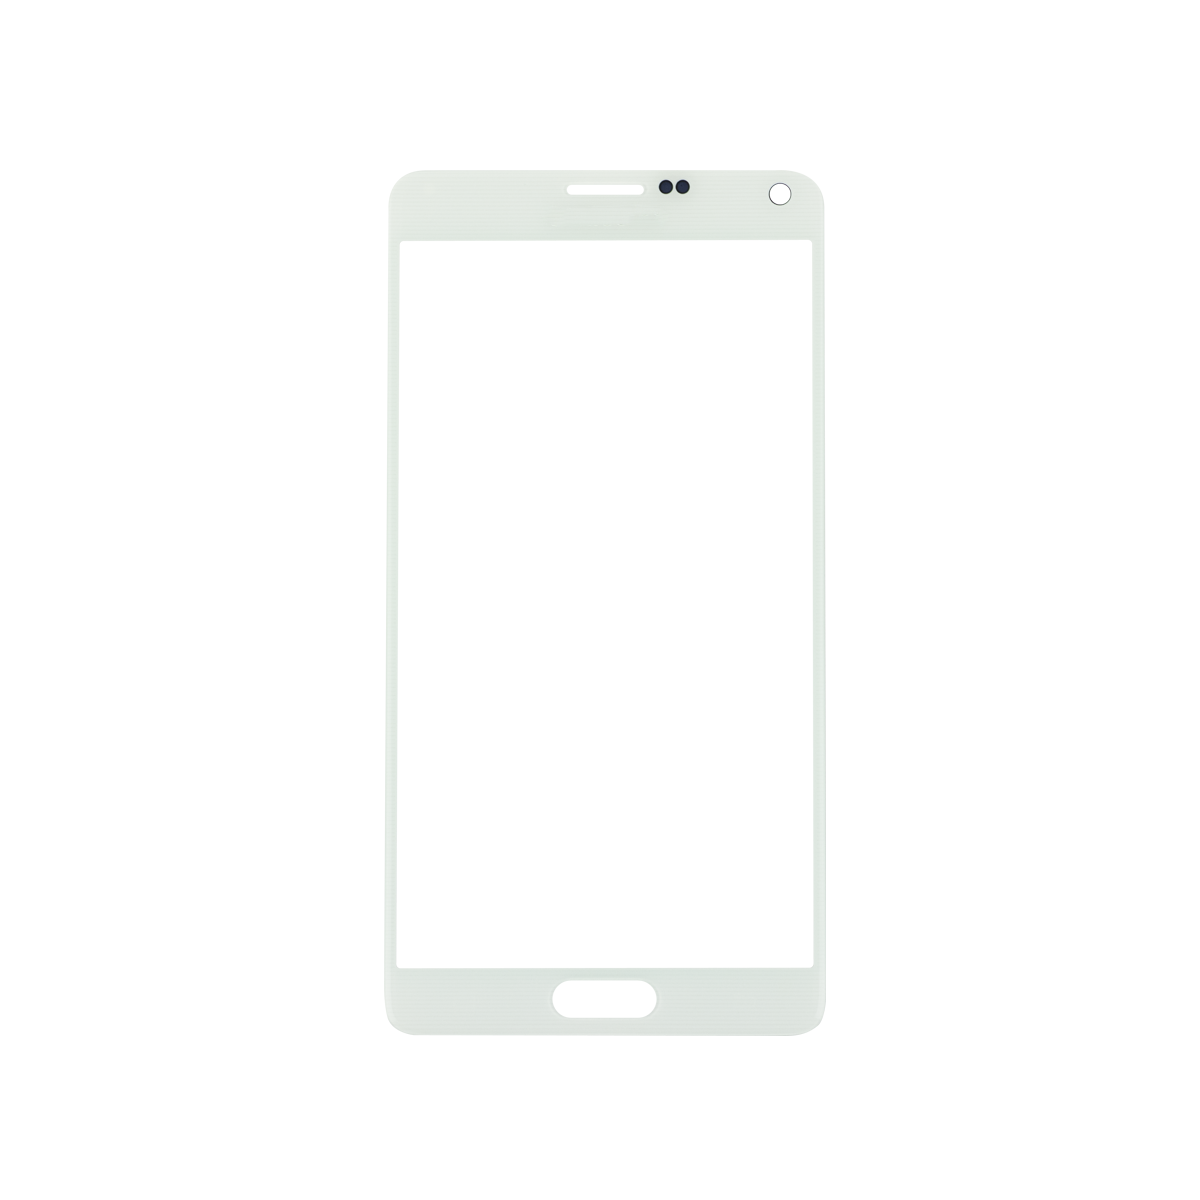 Glass screen png. Samsung galaxy note frosted